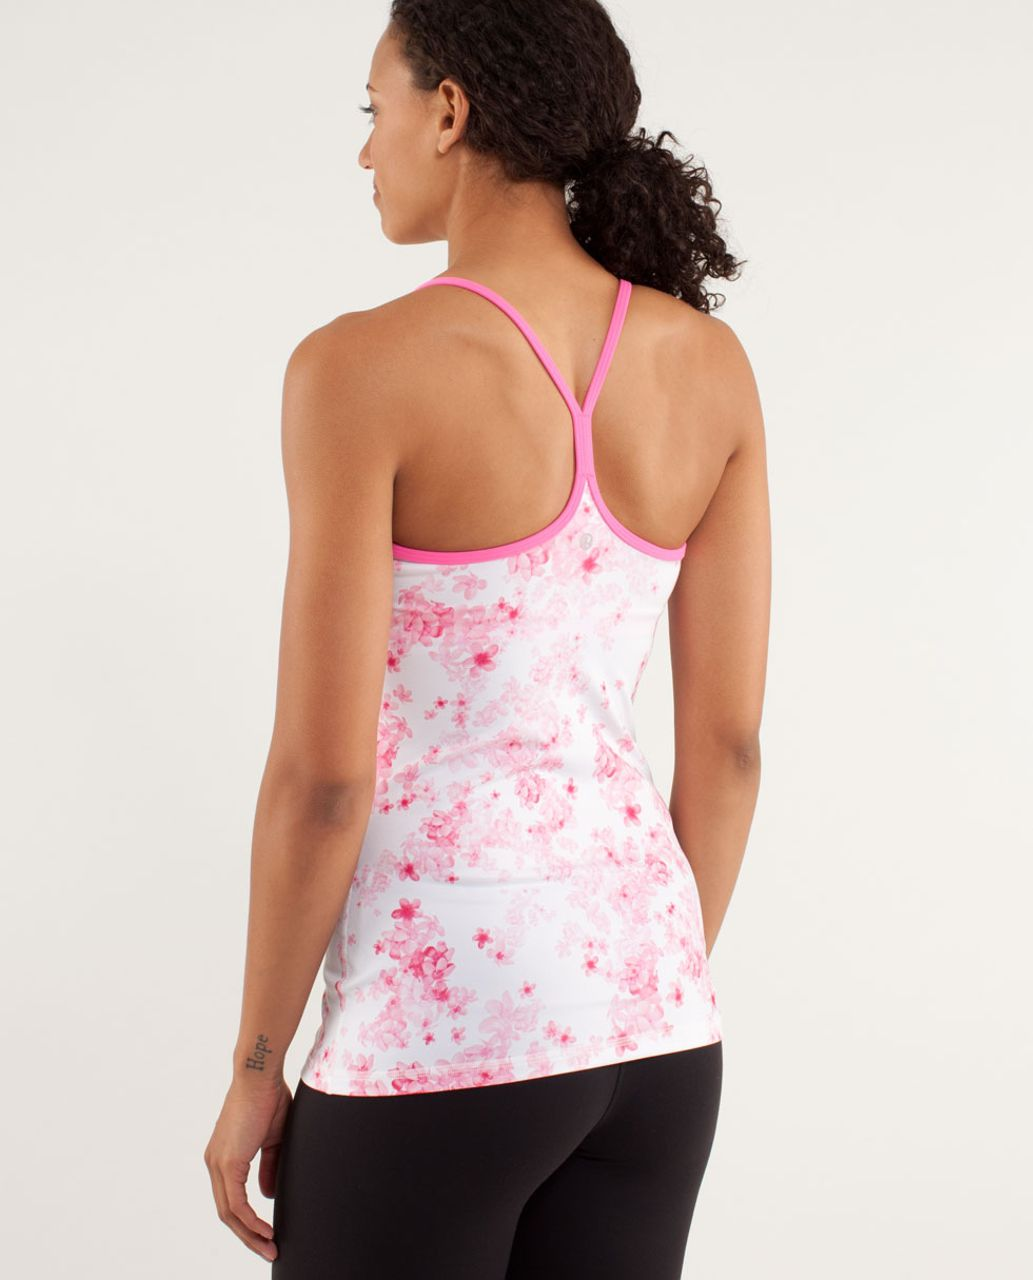 Lululemon Power Y Tank *Luon Light - Frangipani Parfait Pink / White